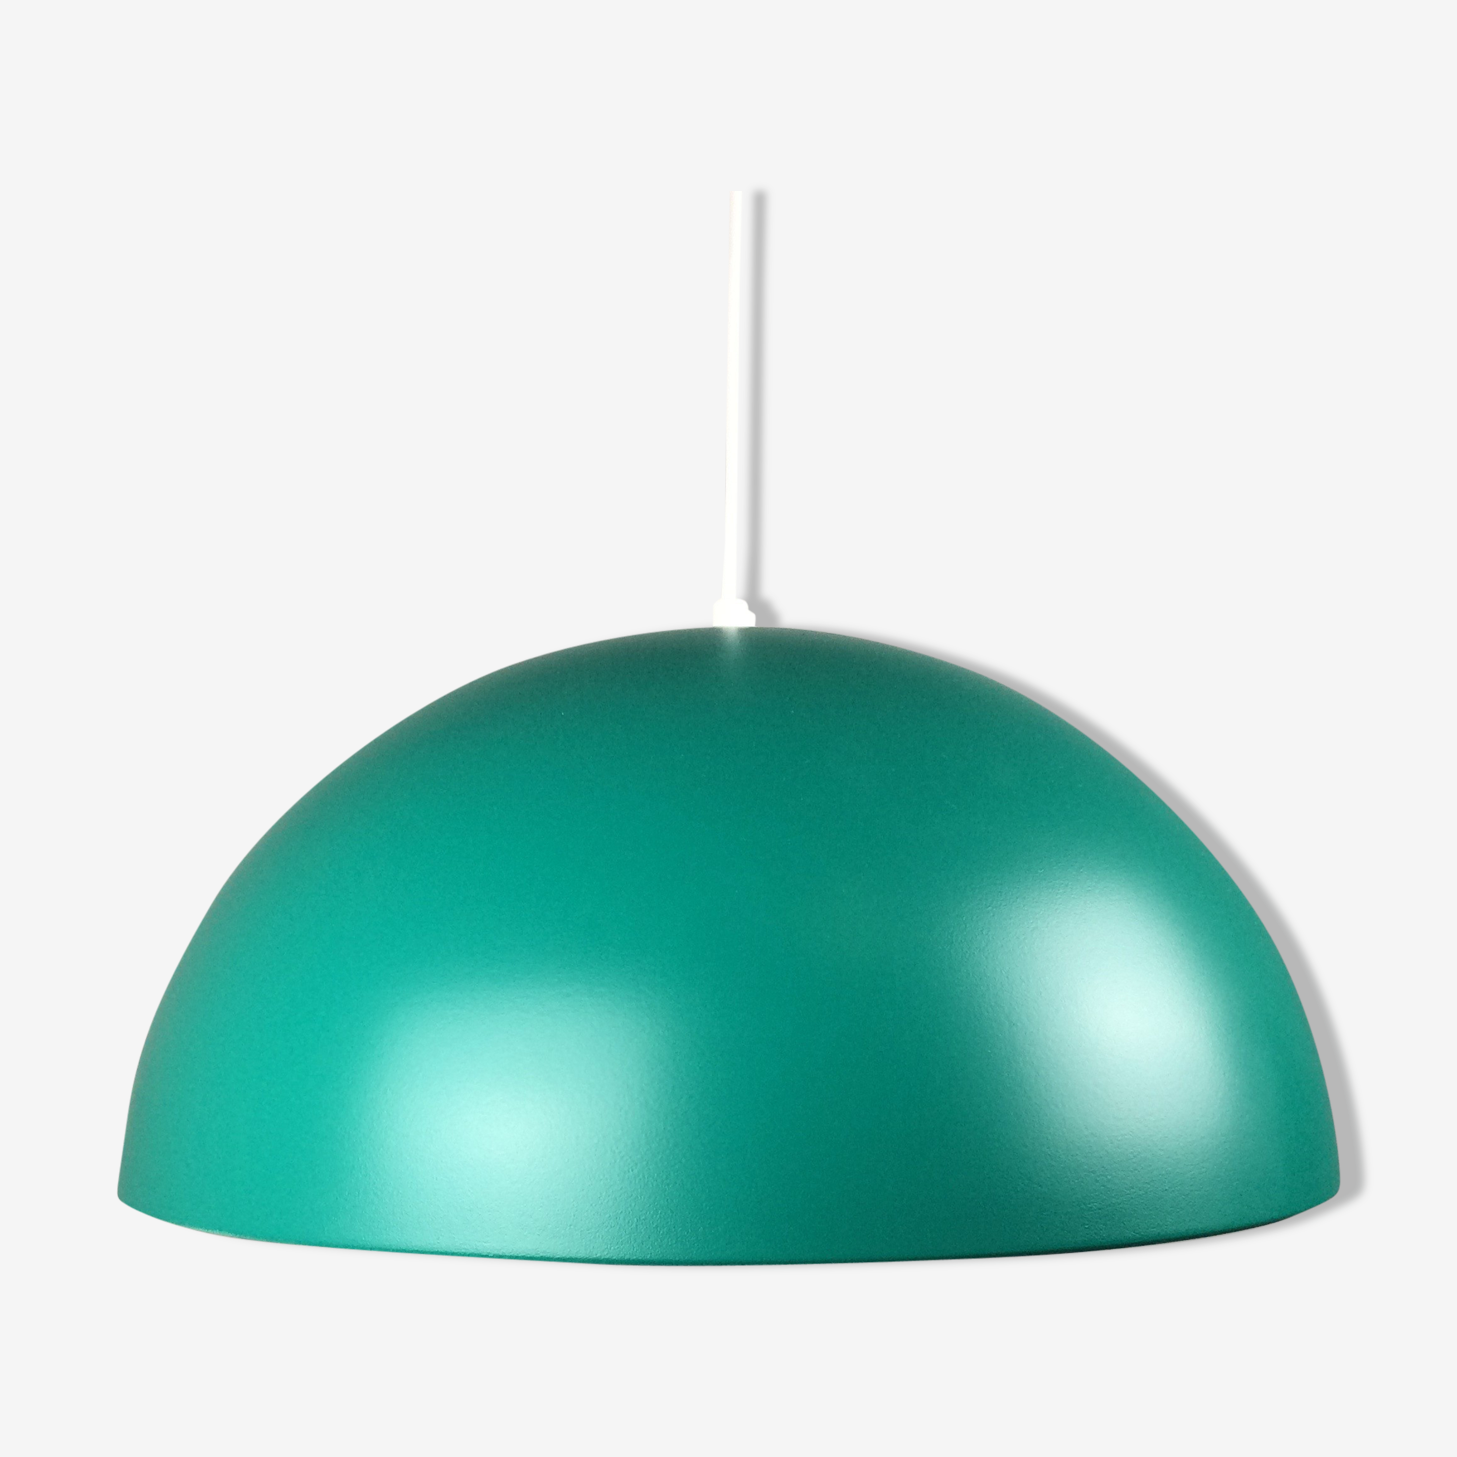 Suspension Vilhelm Wohlert turquoise